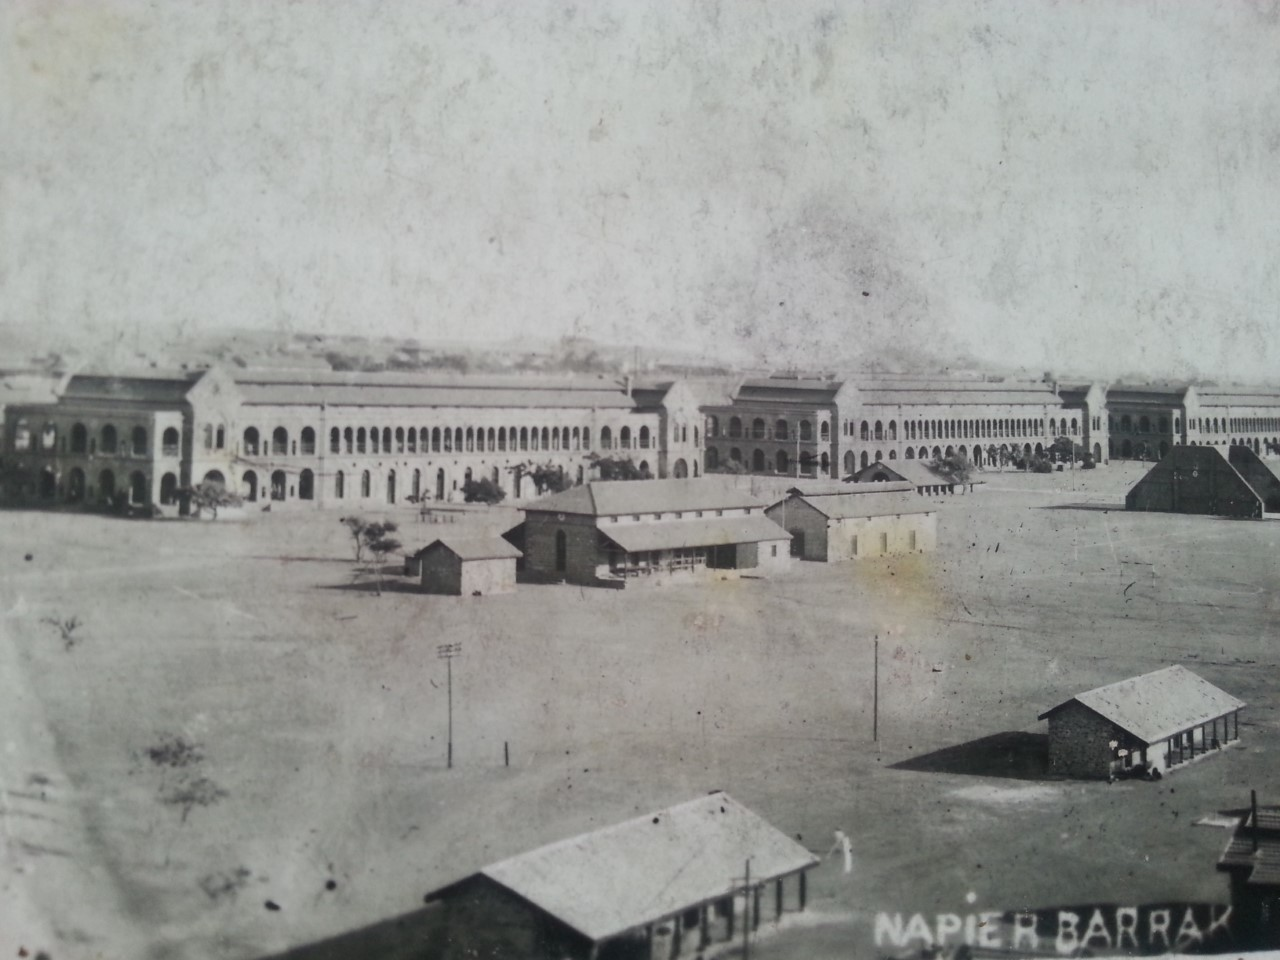 Napier Barracks